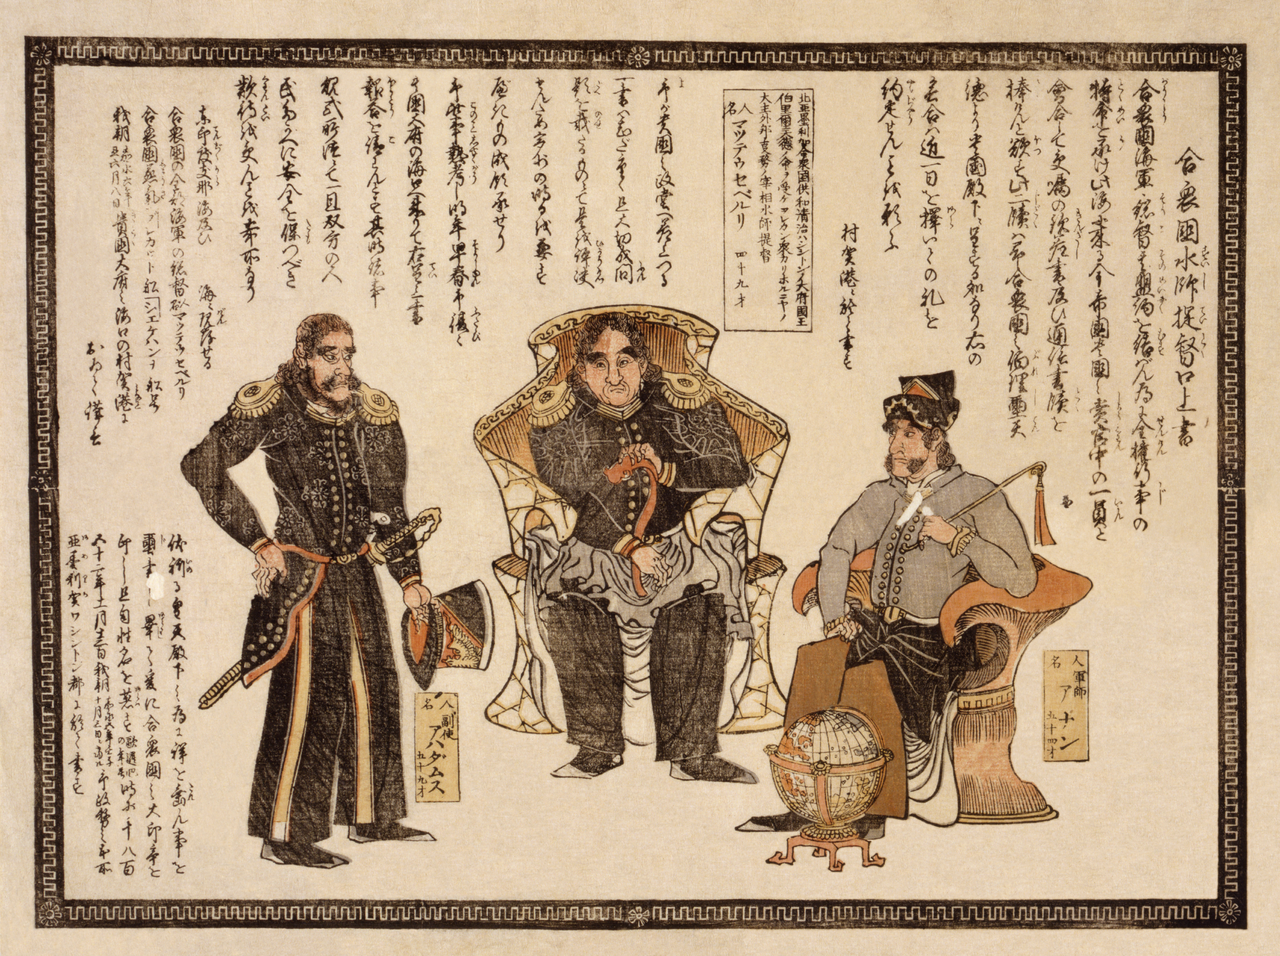 Opening of Japan, 1853